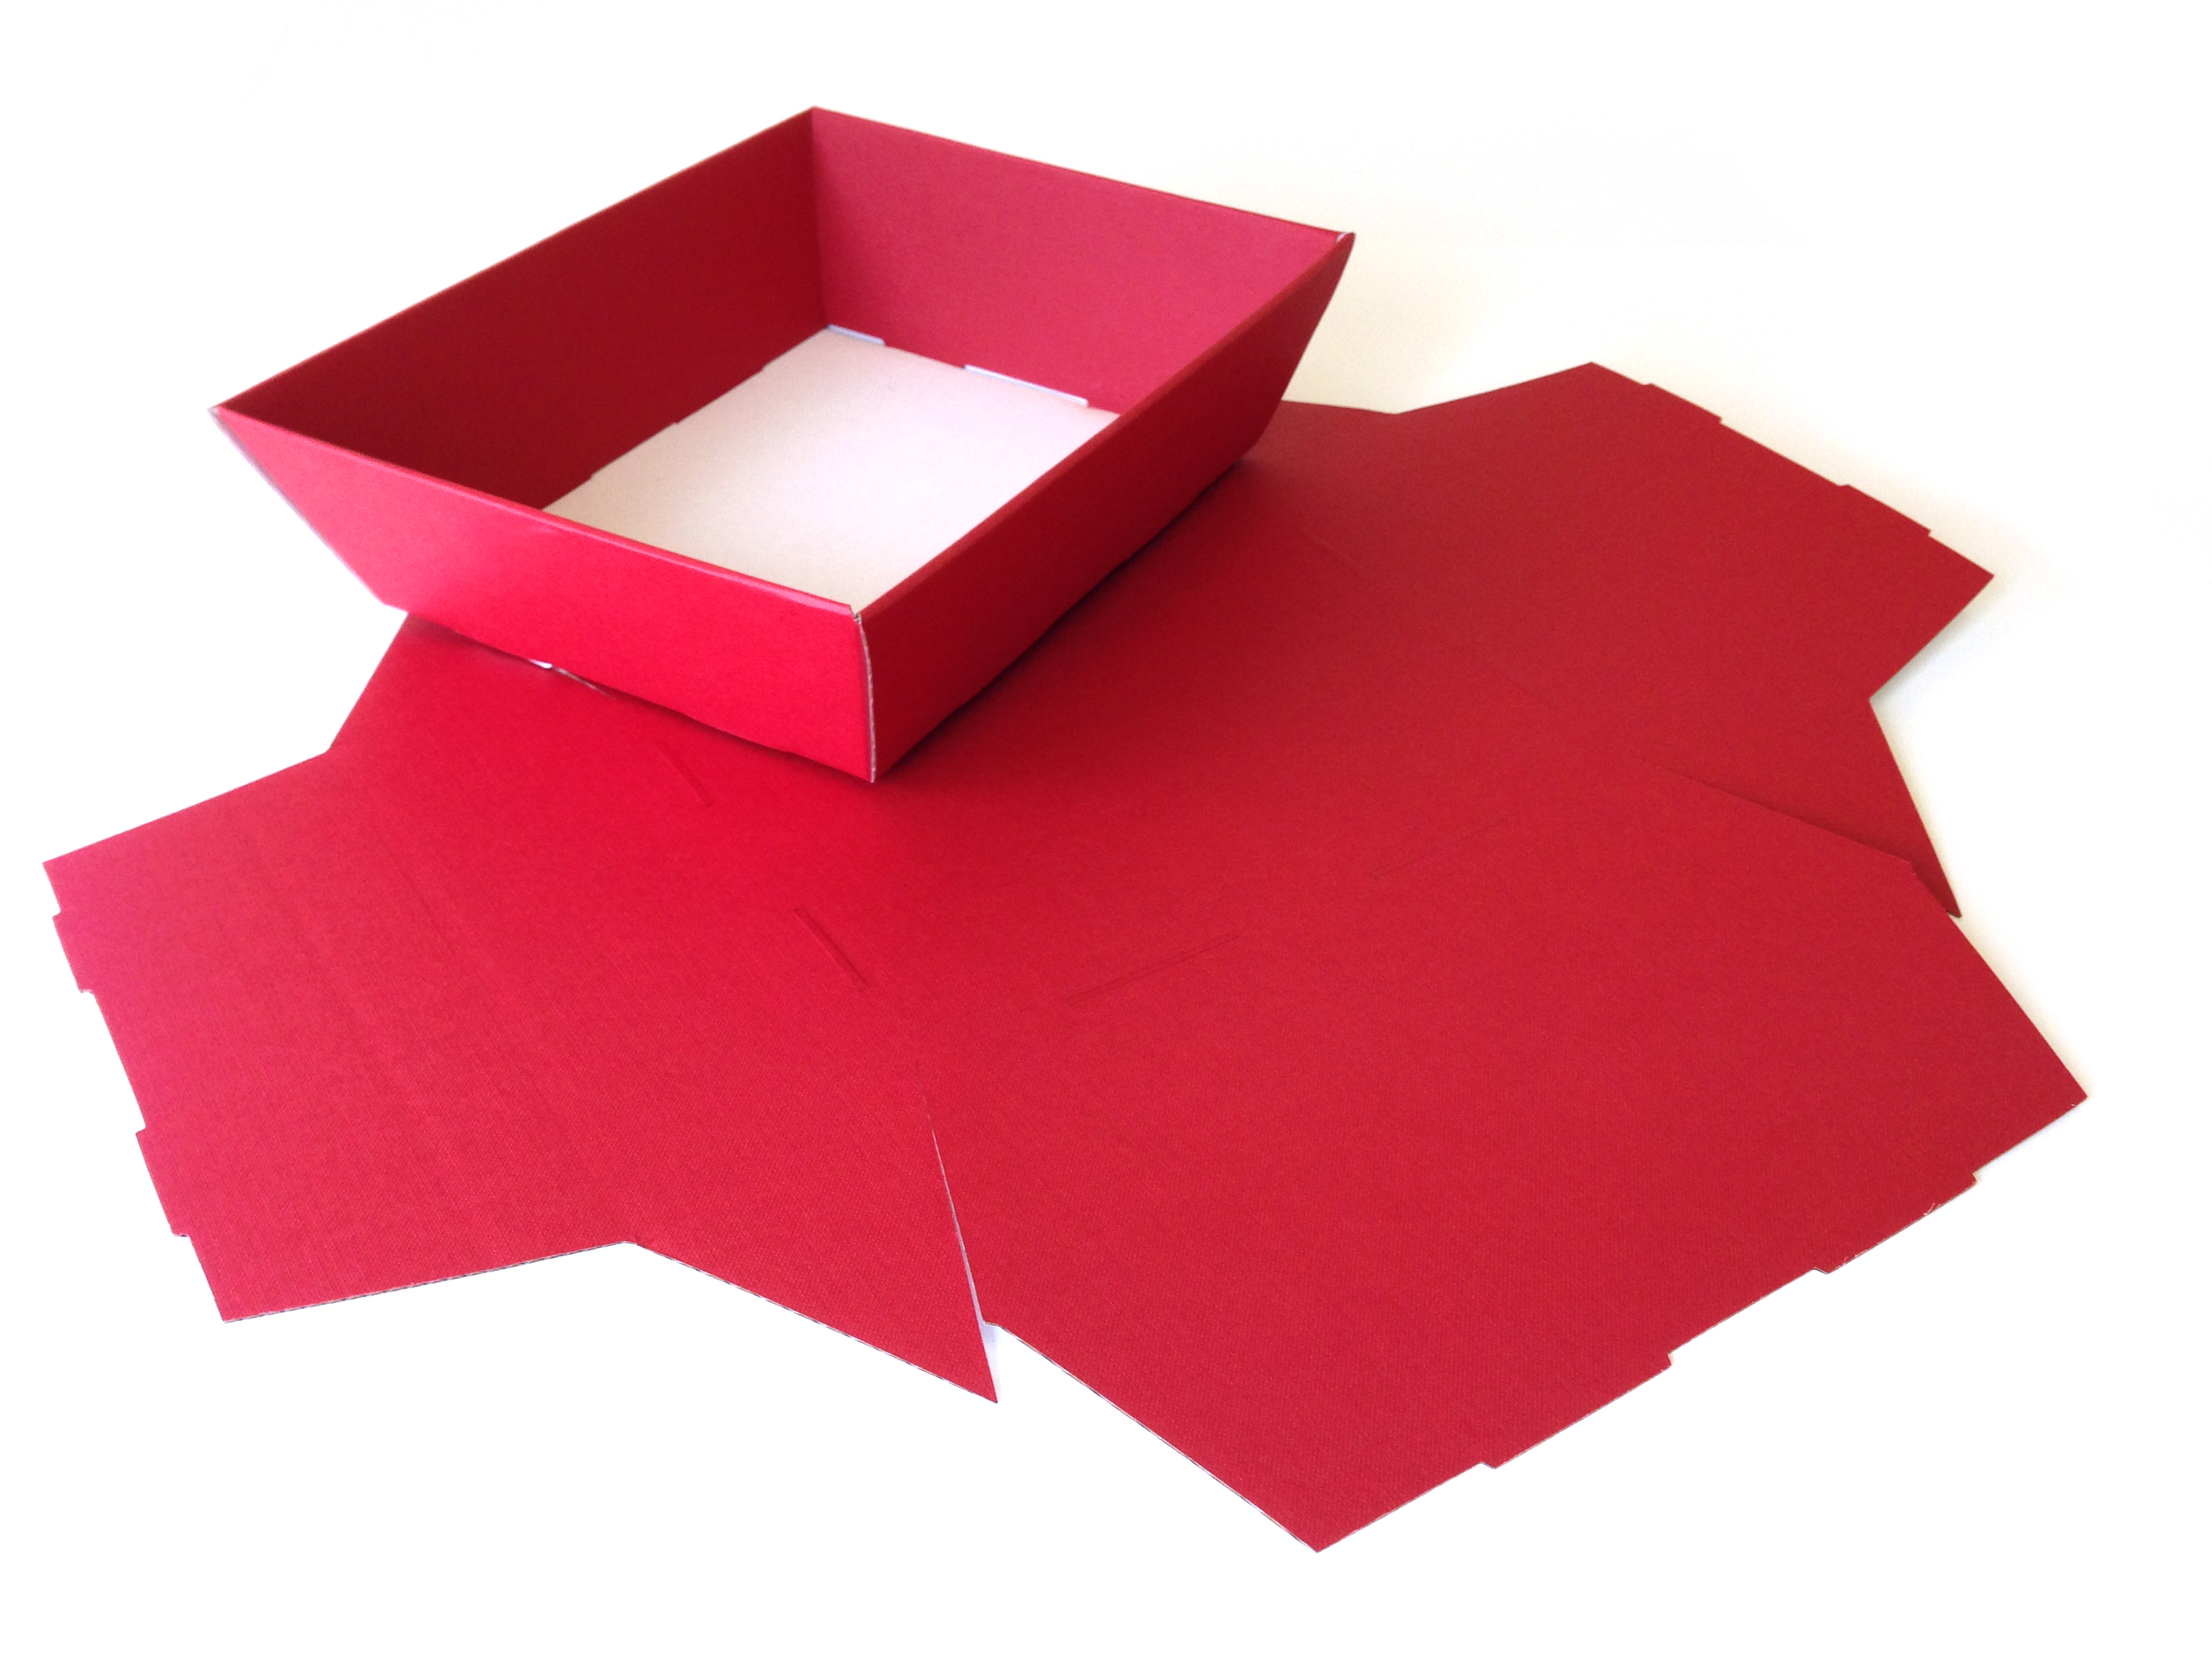 Red Medium sized Fold-up Hamper Tray - perfect for Christmas or a pre-Christmas product focused giftset promotion